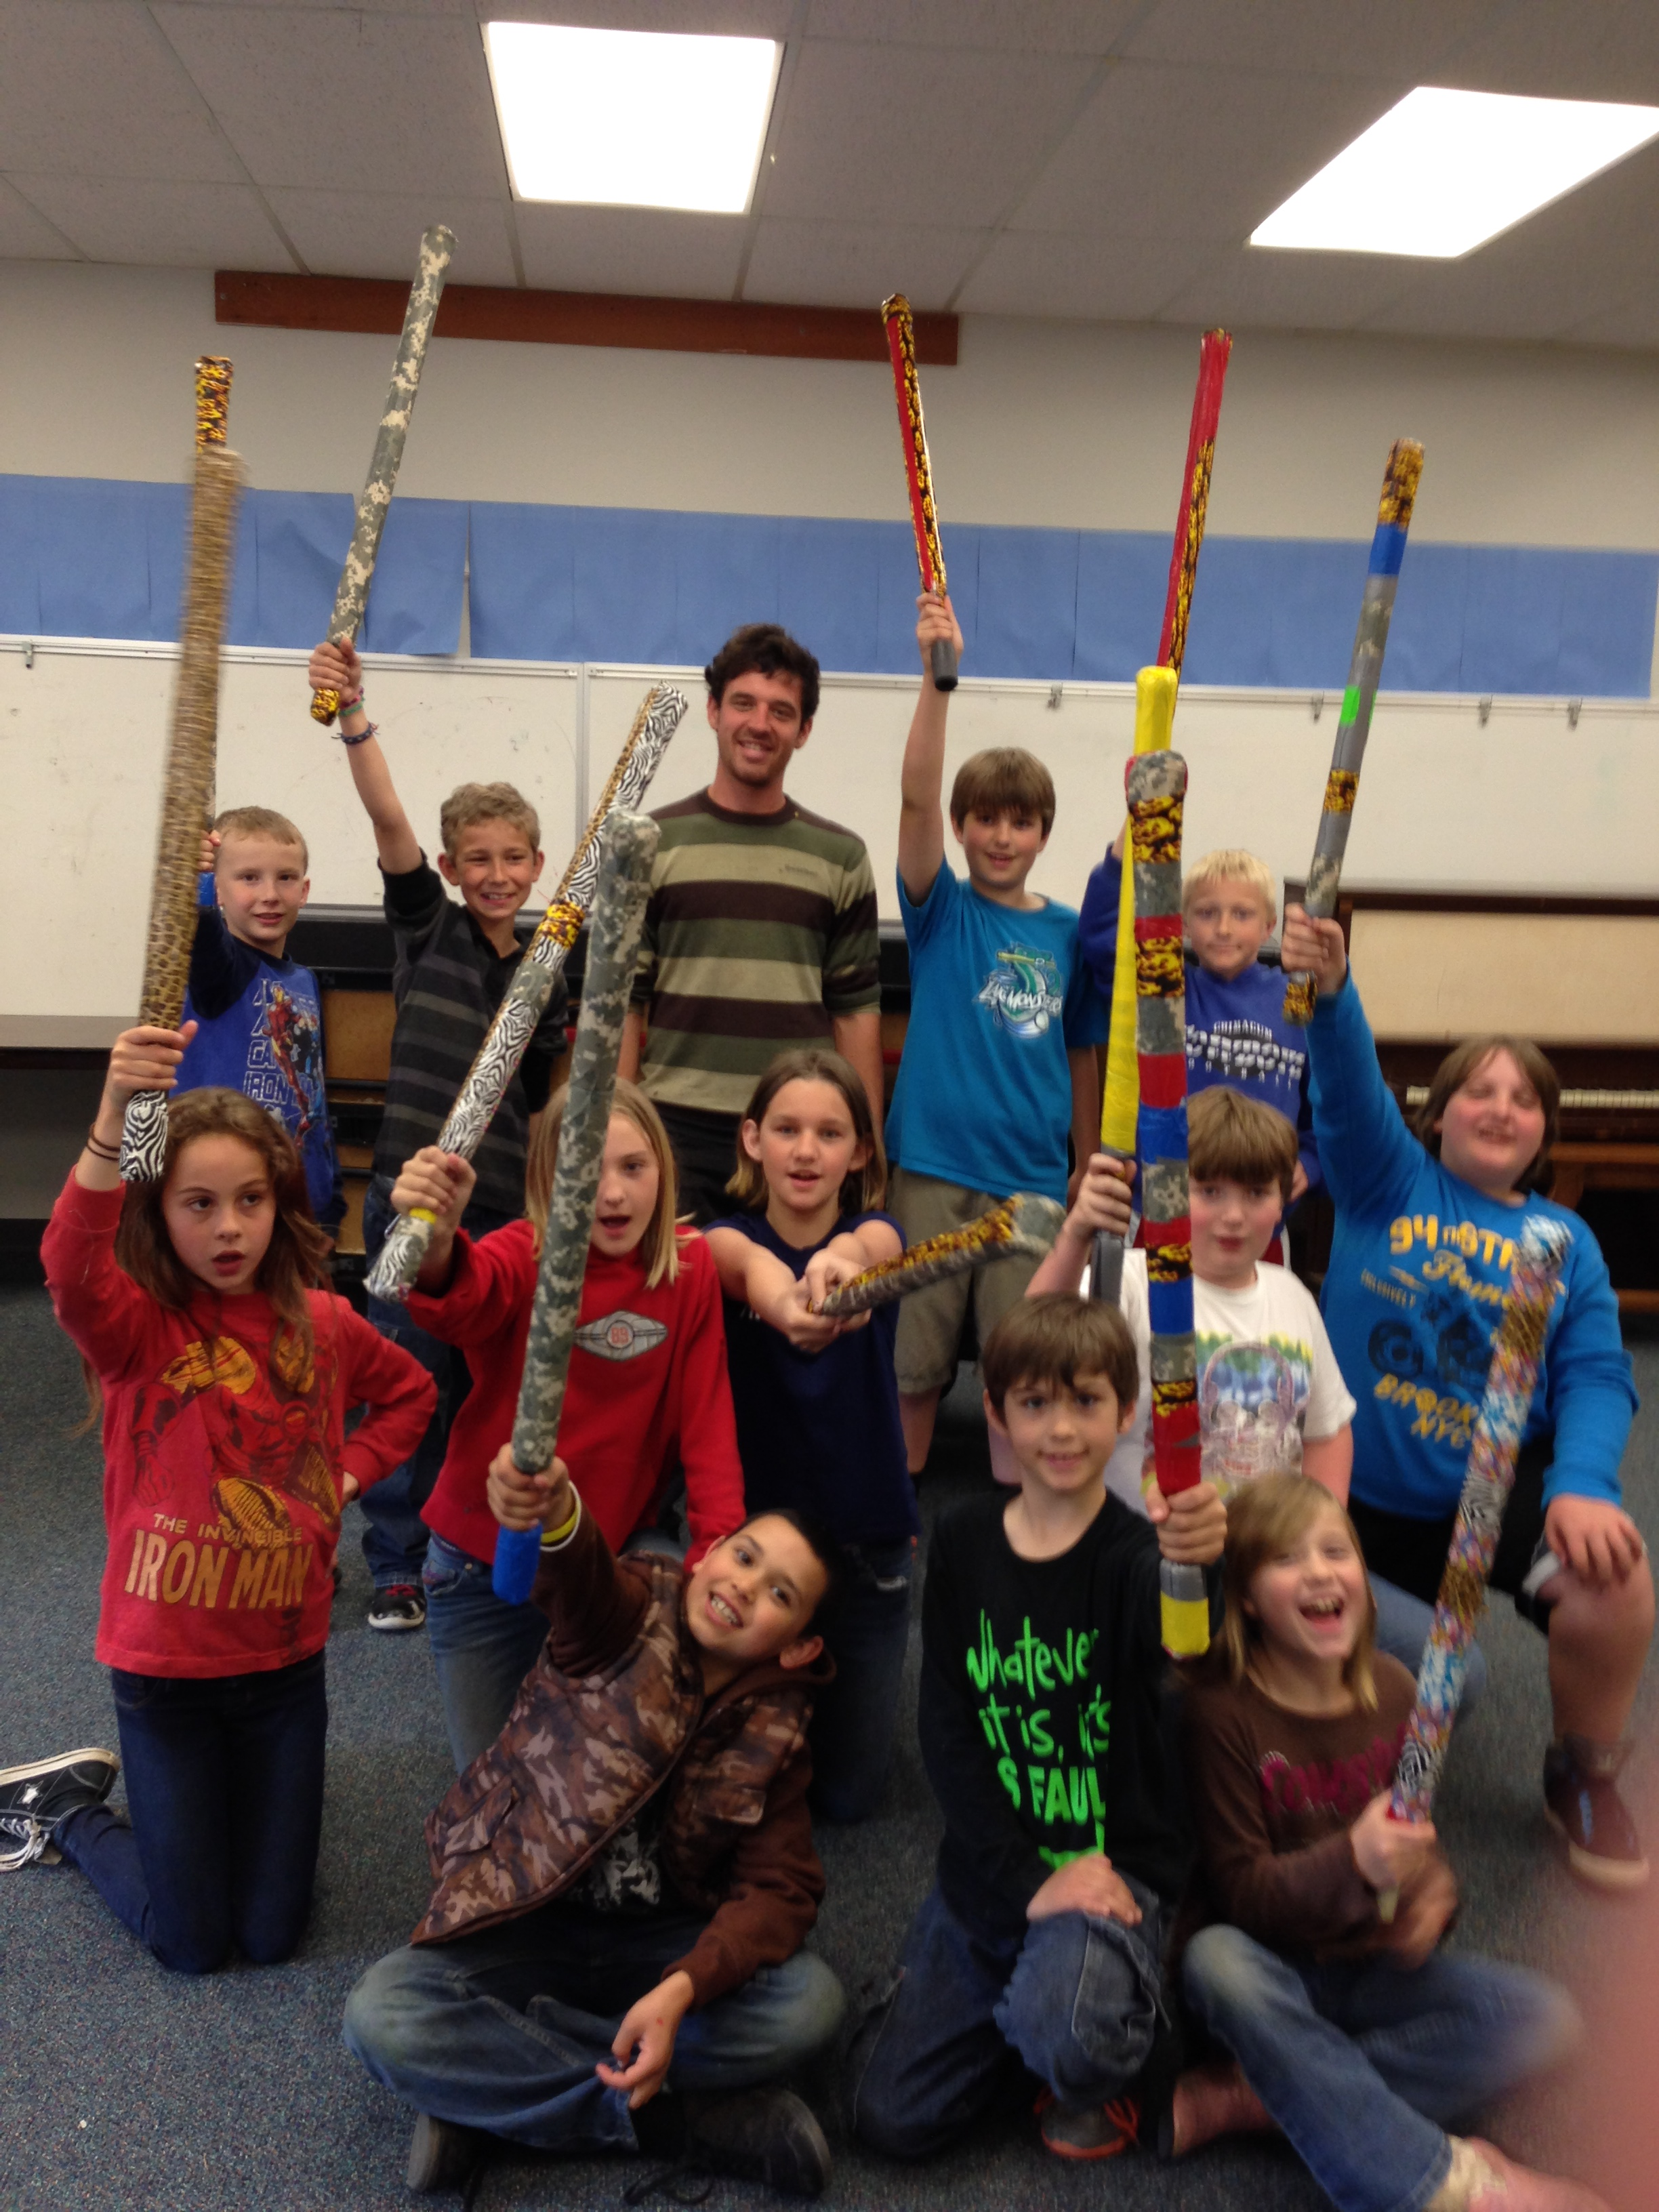 Group of teens wielding play swords